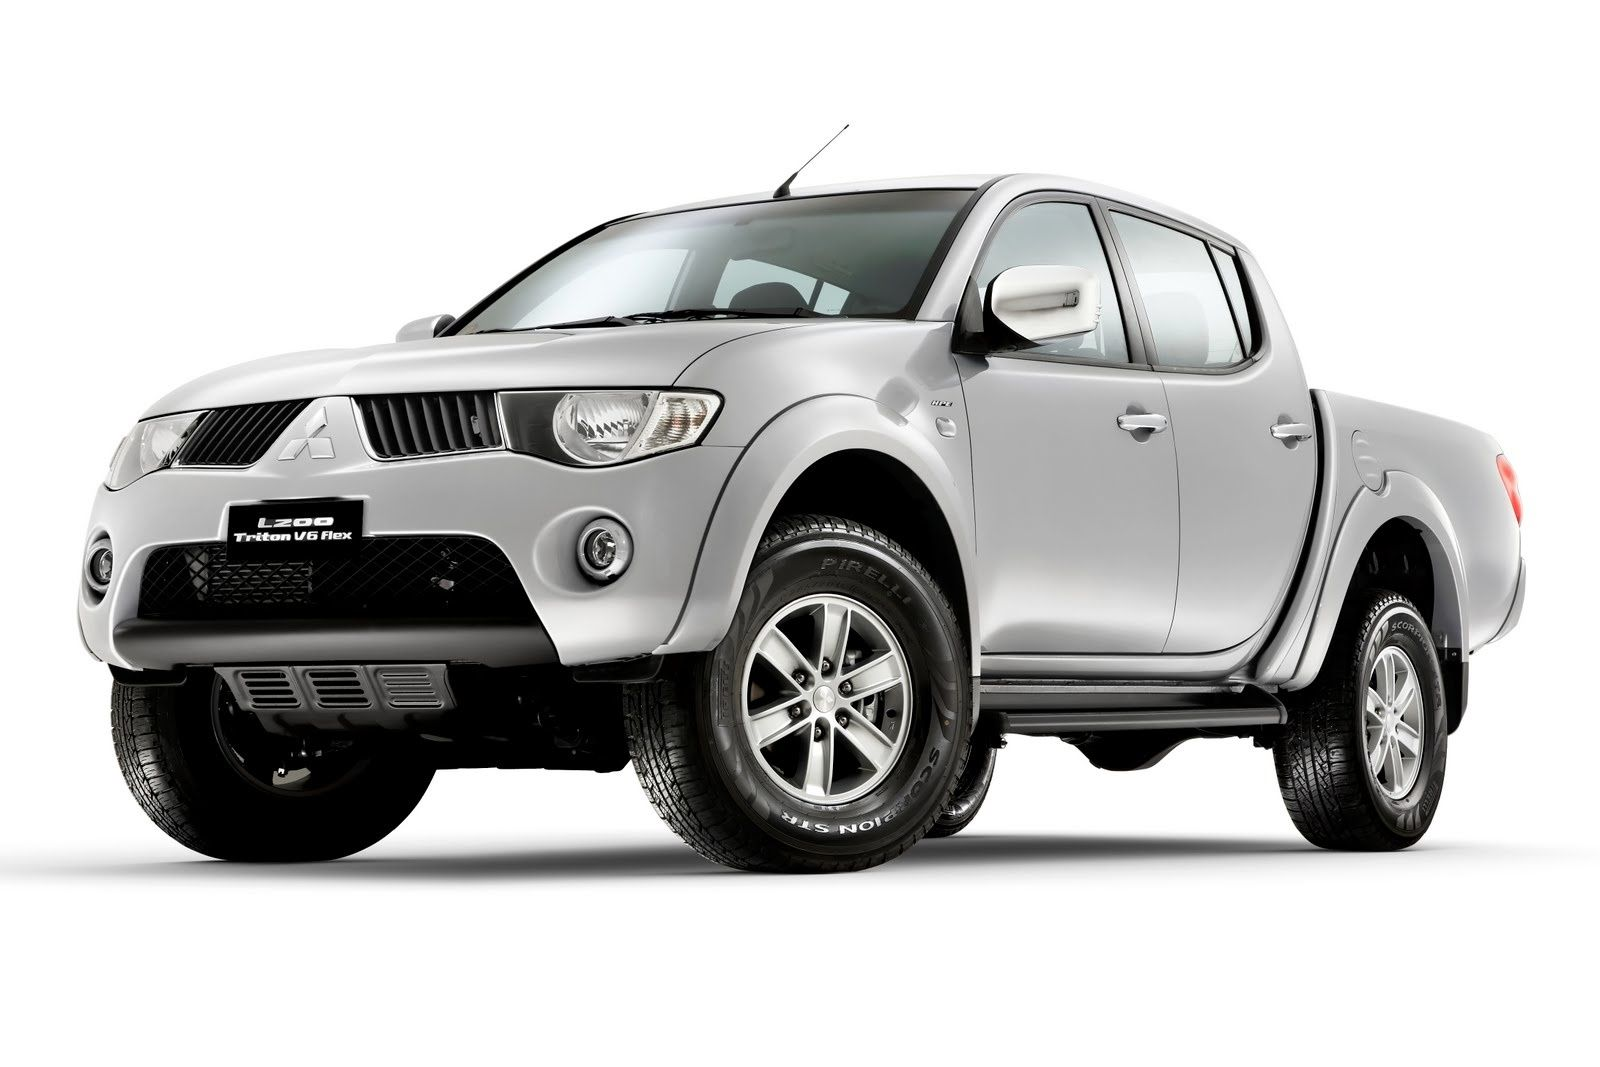 small resolution of 2015 mitsubishi triton l200 service manual cd 2015 iso pdfthis high quality